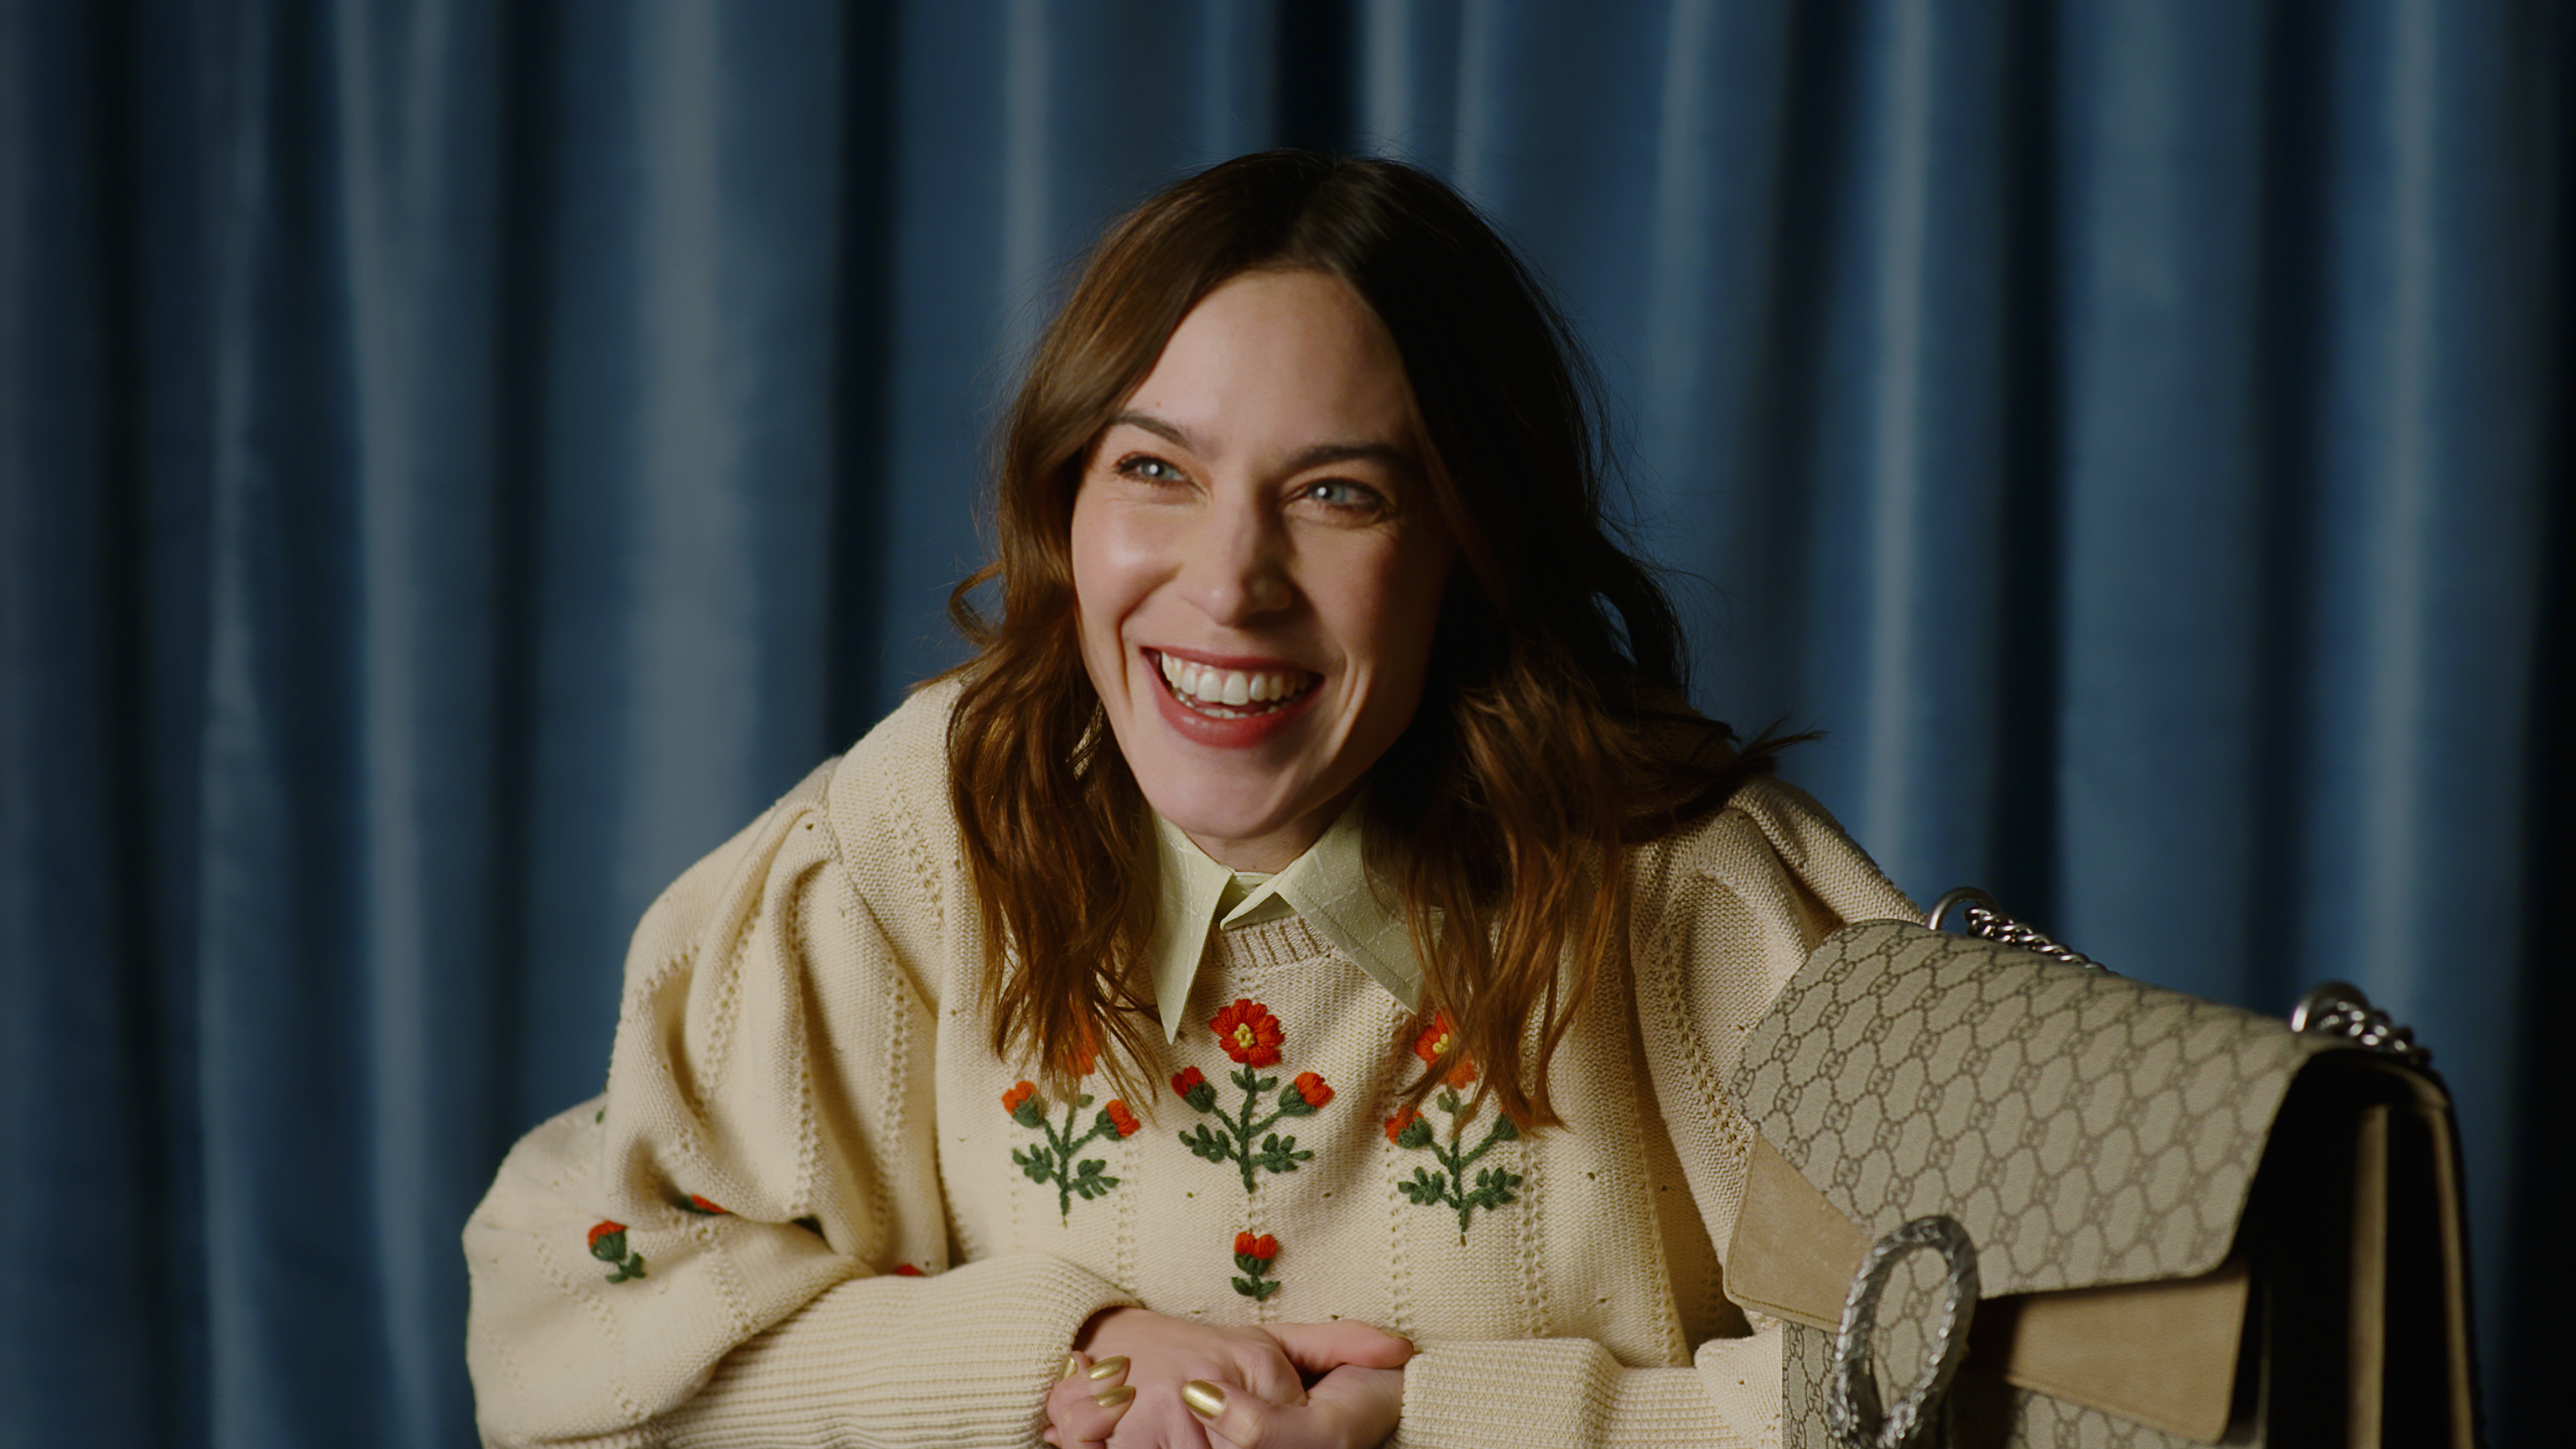 Watch Alexa Chung reveal all playing 'Fill in the blank'